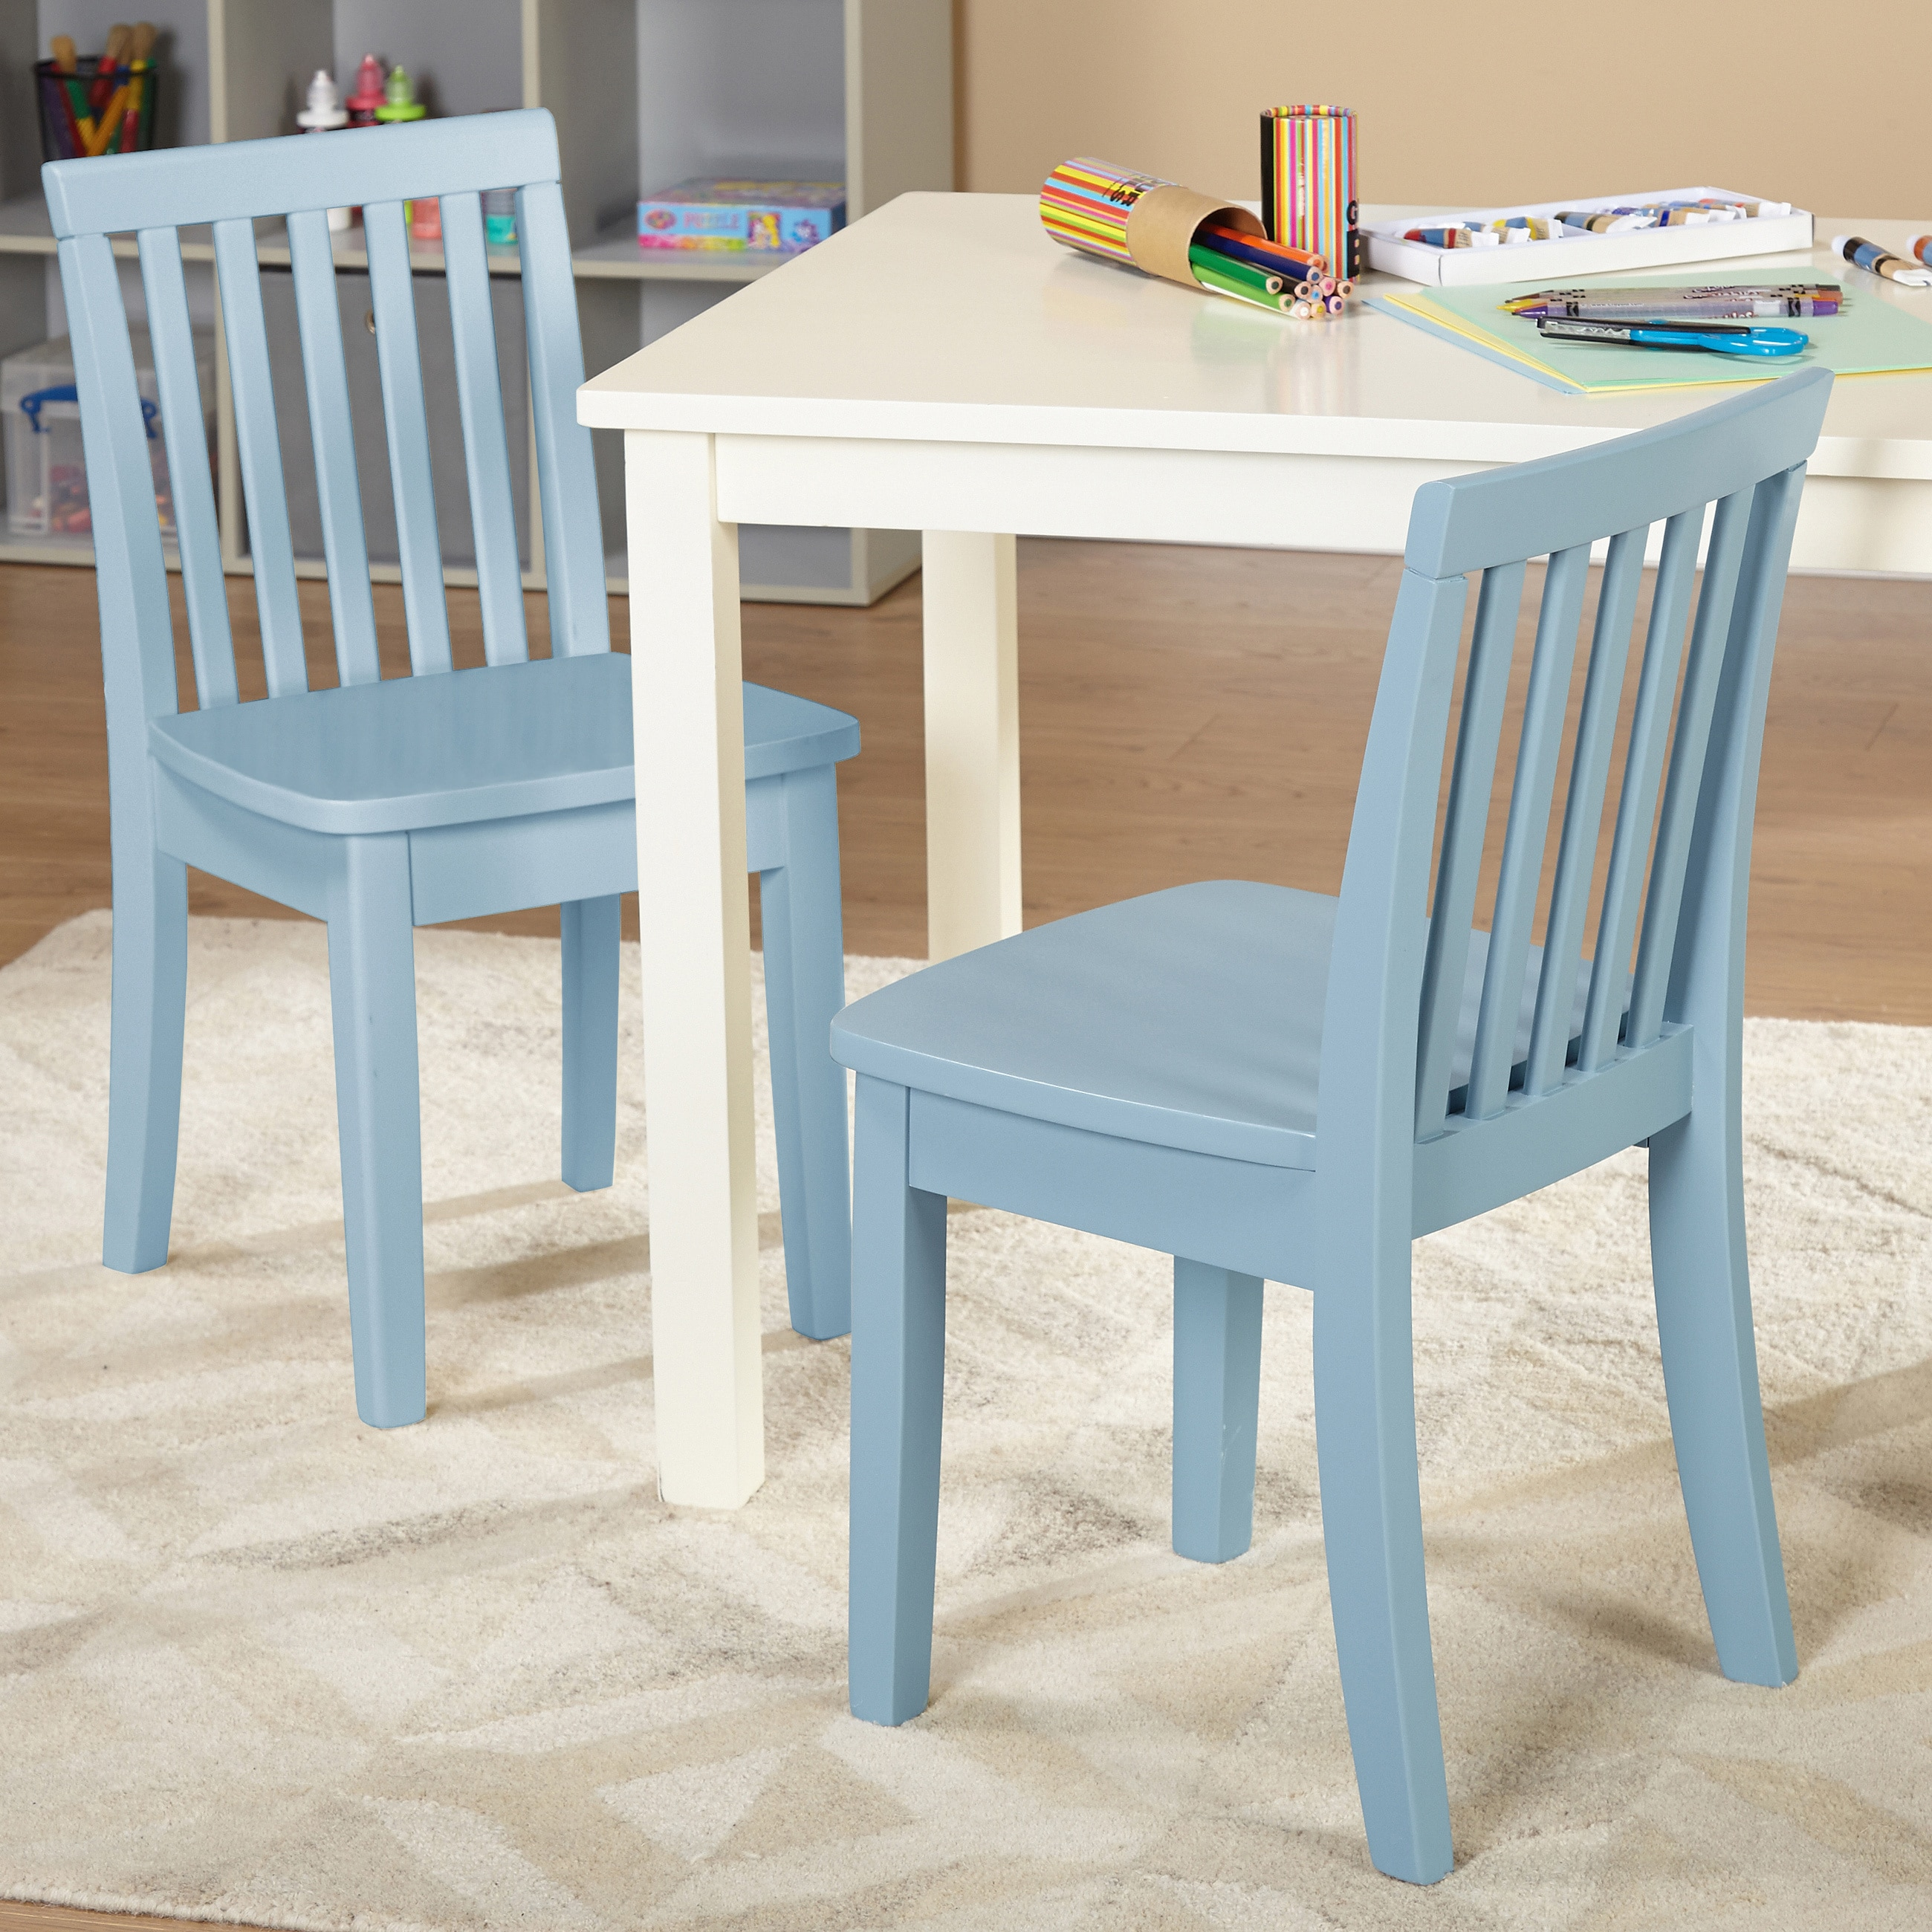 Shop Simple Living Alice Kids Chair, Set of 2 - On Sale - Free ...